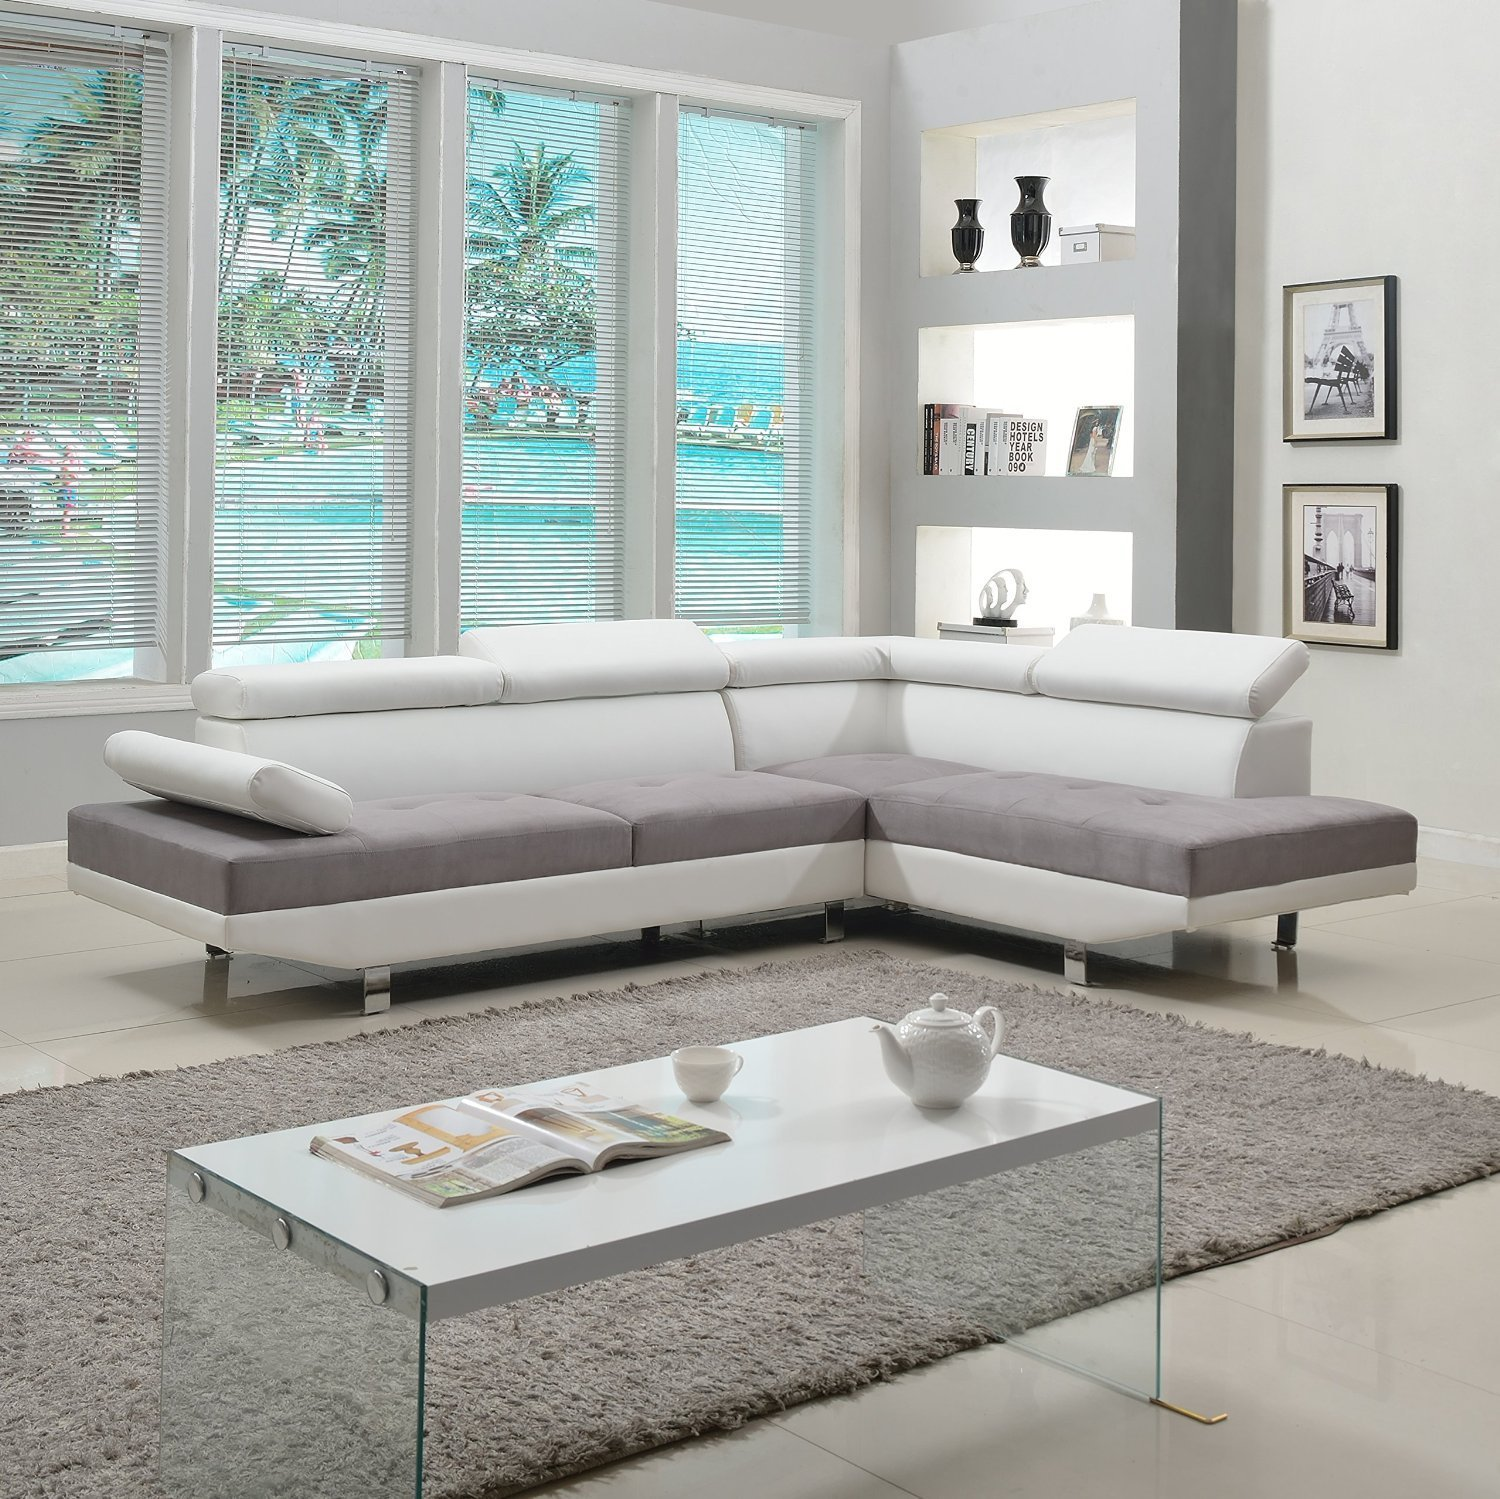 Divano Roma Furniture Modern Contemporary Designed Two Tone White/Grey  Microfiber And Bonded Leather Sectional Sofa